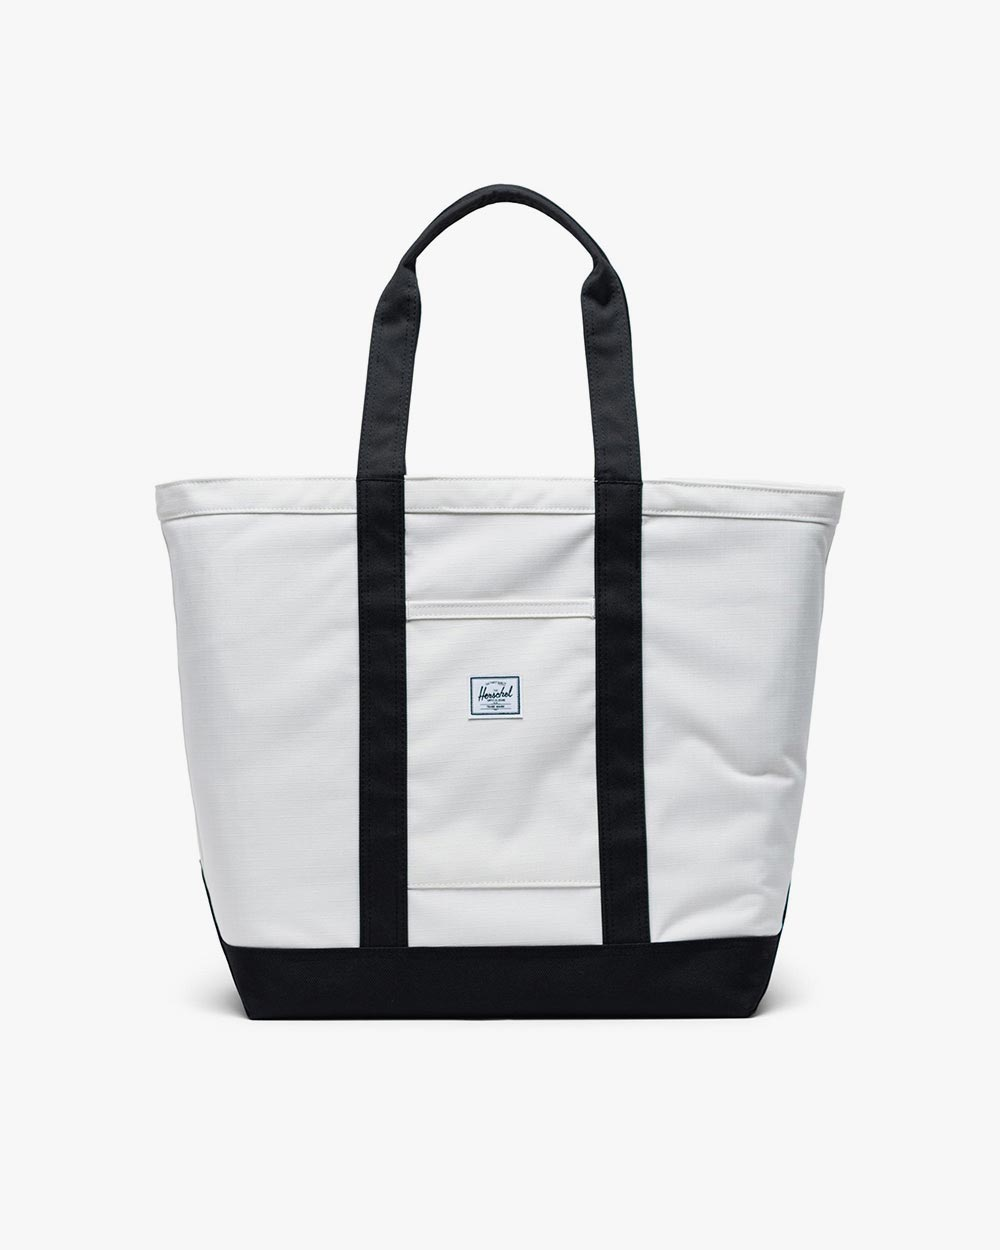 Totes Category